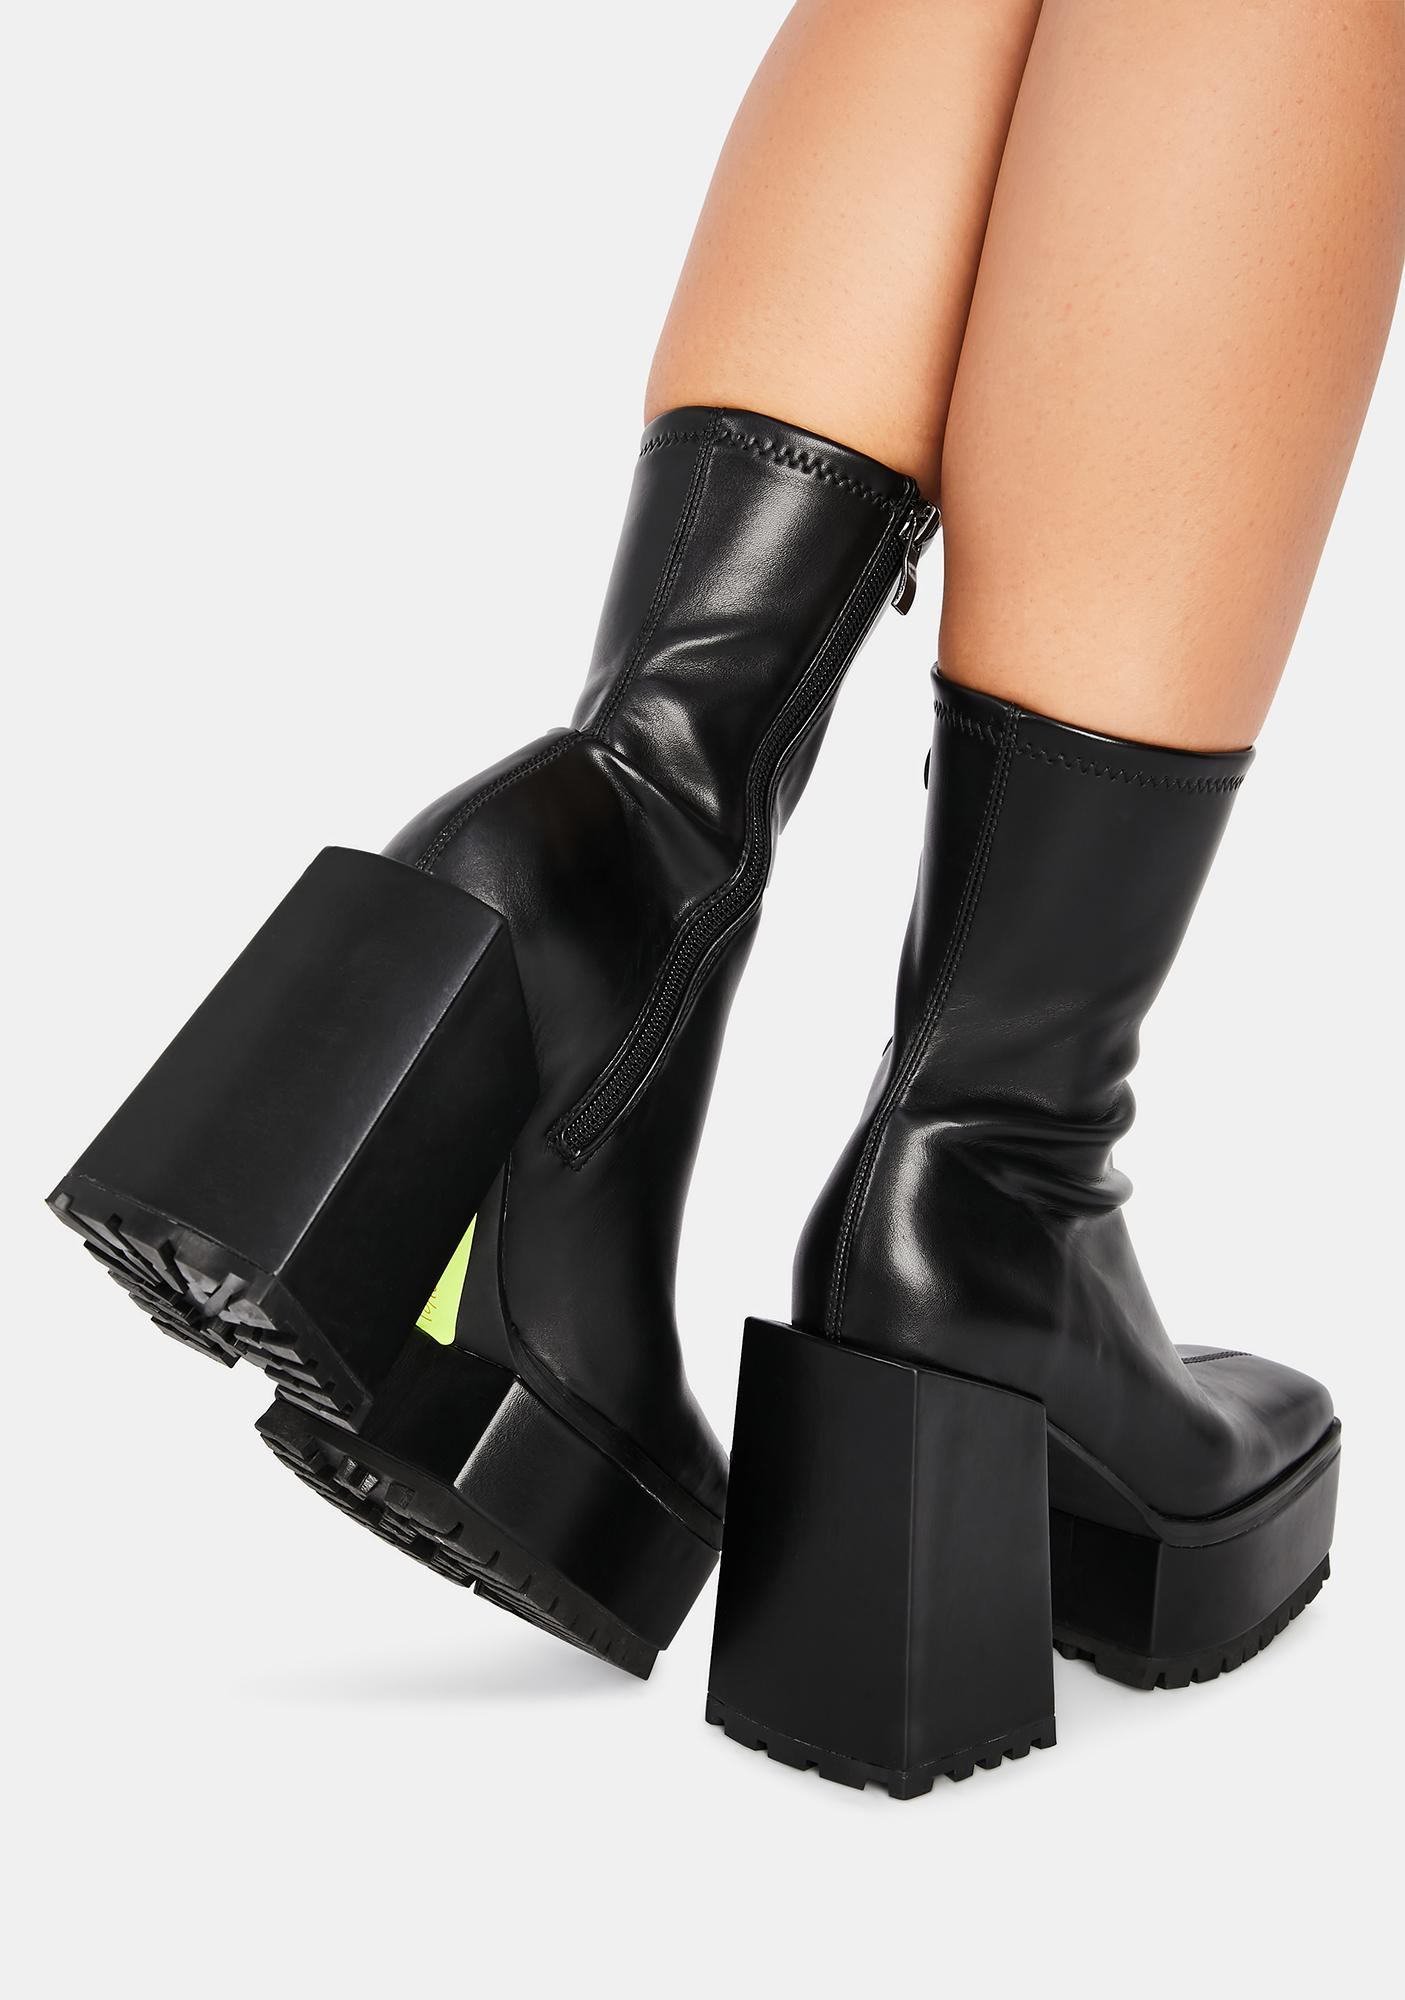 Poster Grl Disappearing Act Platform Boots